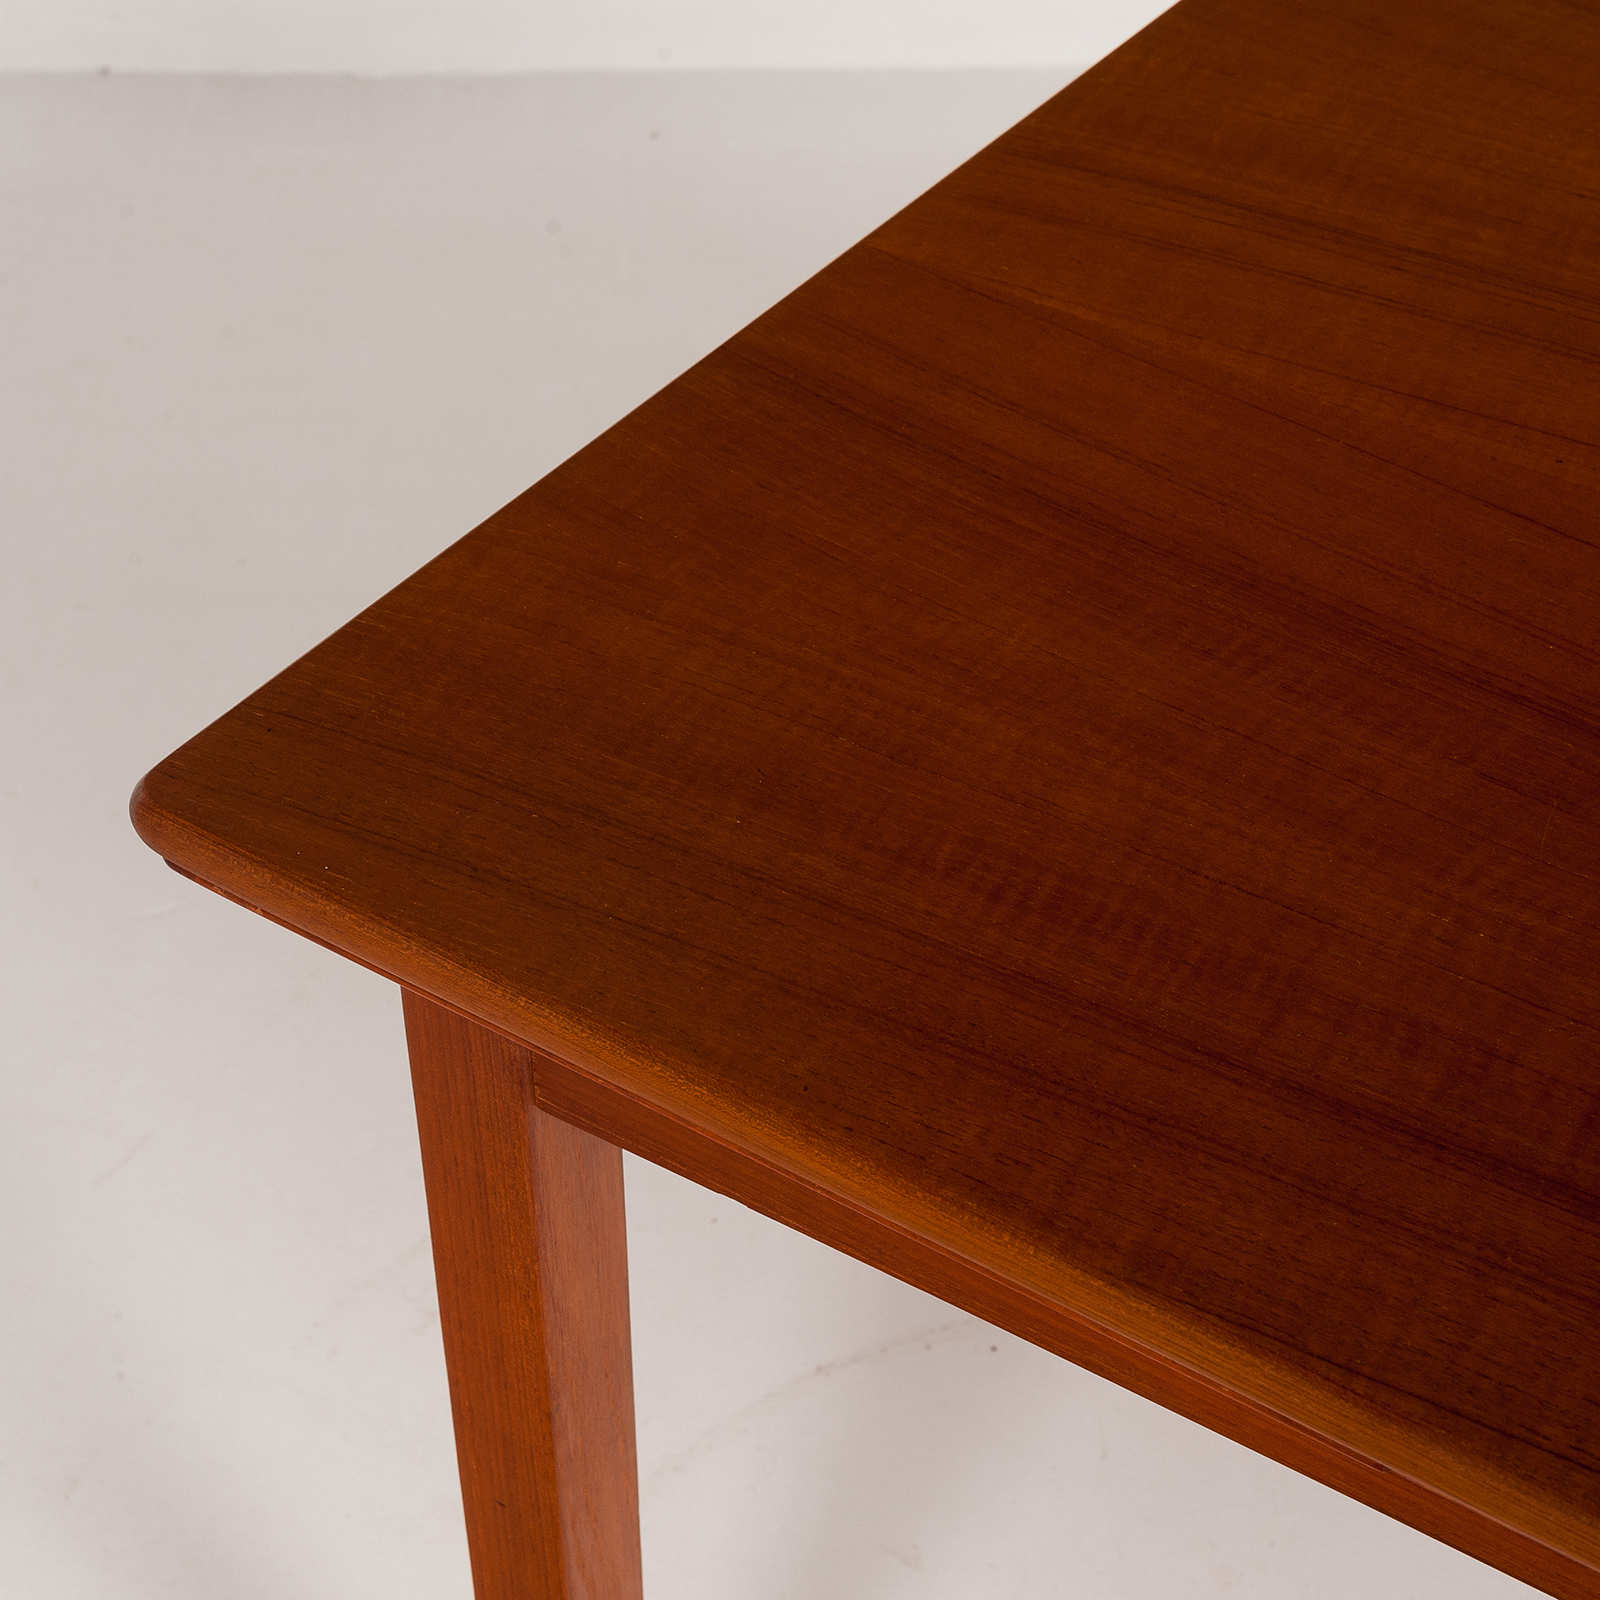 Rectangular Extension Dining Table In Teak With Square Legs, 1960s, Denmark6007